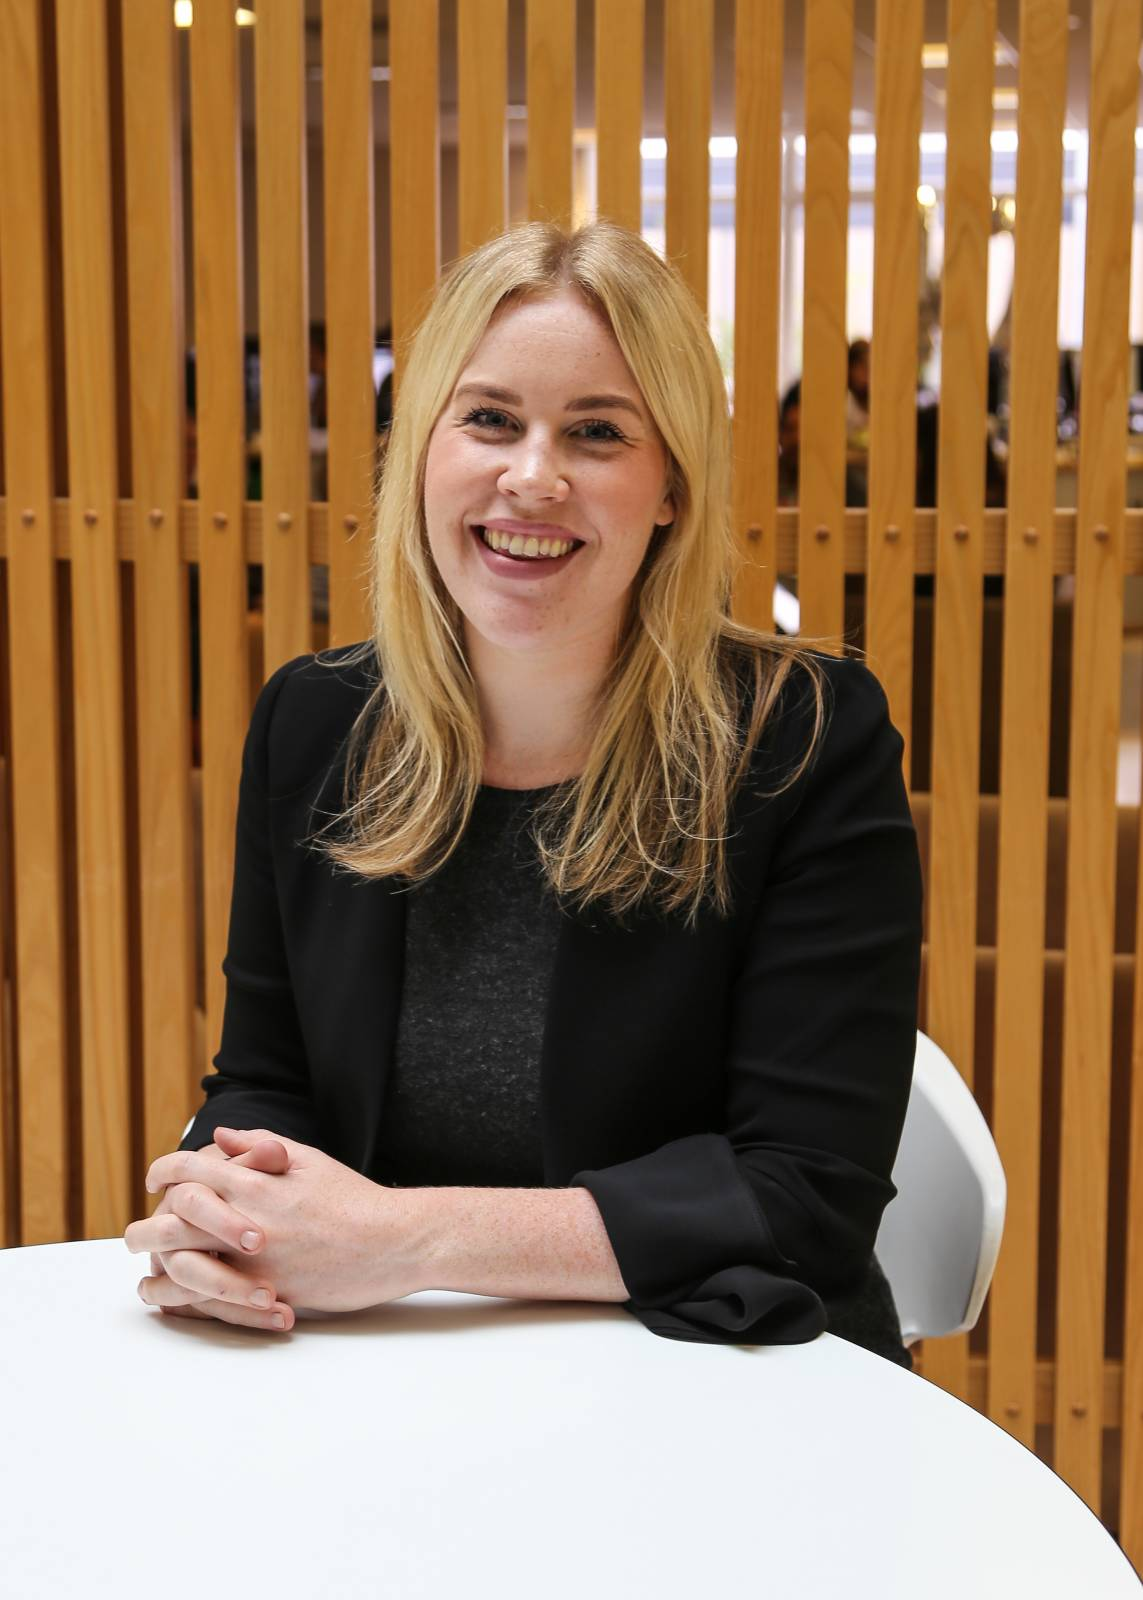 NEC Appoints New Senior Account Manager